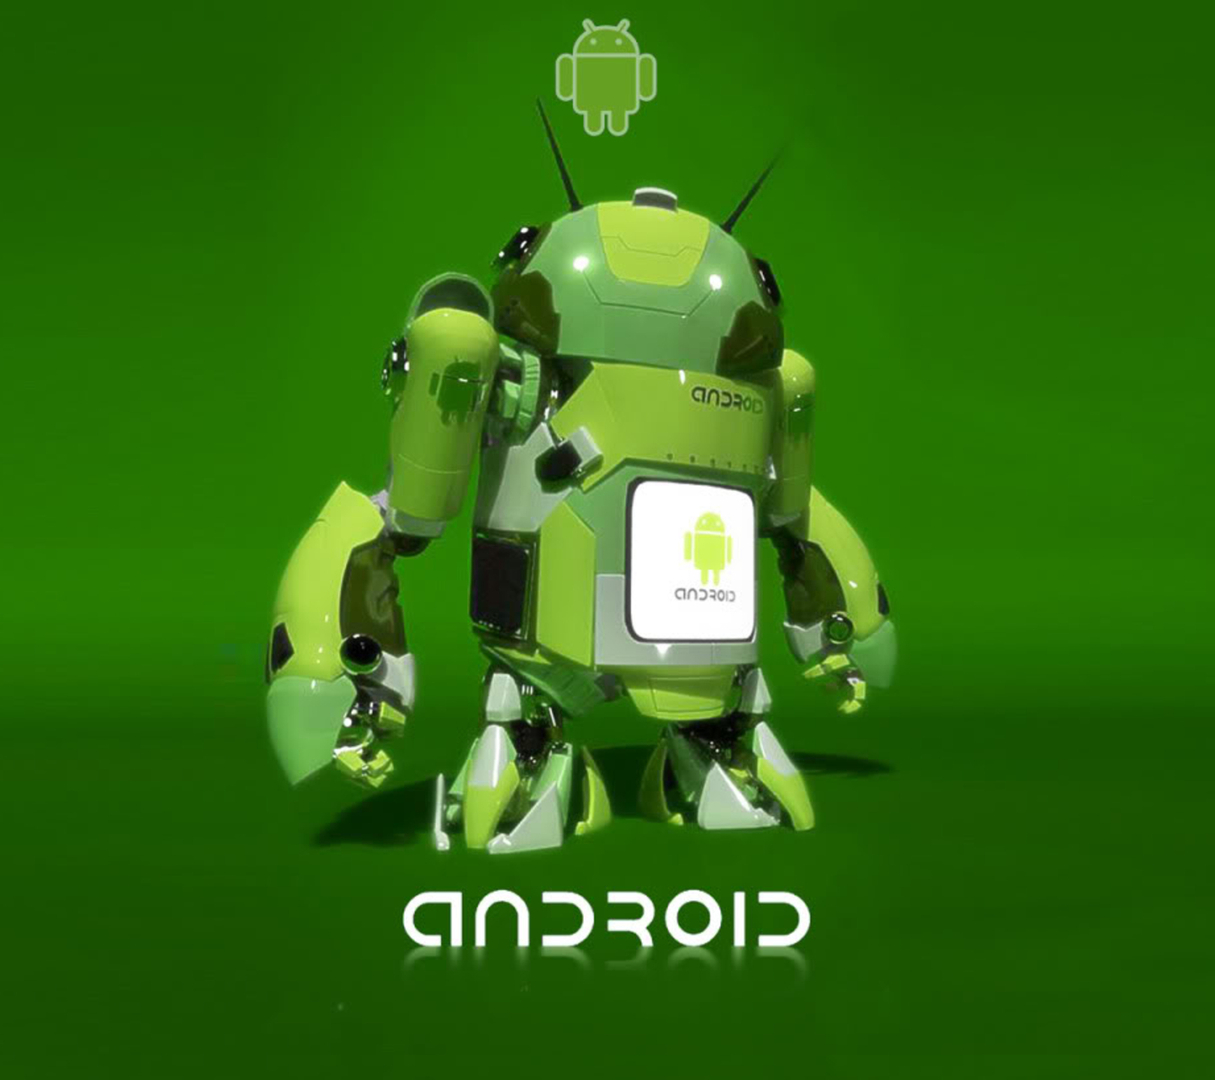 cool android robot hd wallpaper download wallpapers page